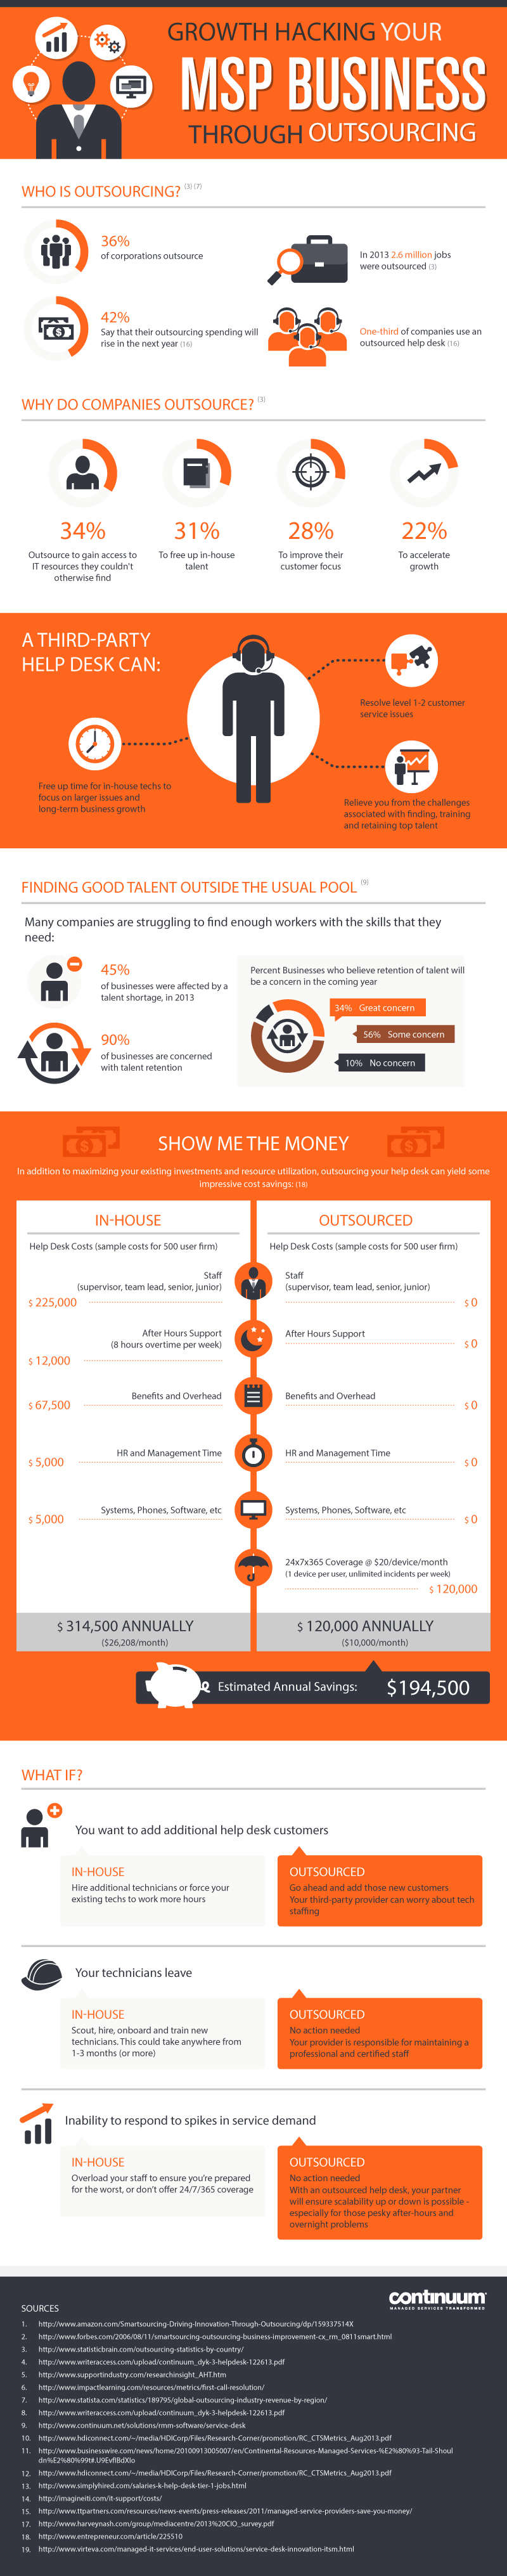 Growth-Hacking-Service-Desk-Infographic[3]